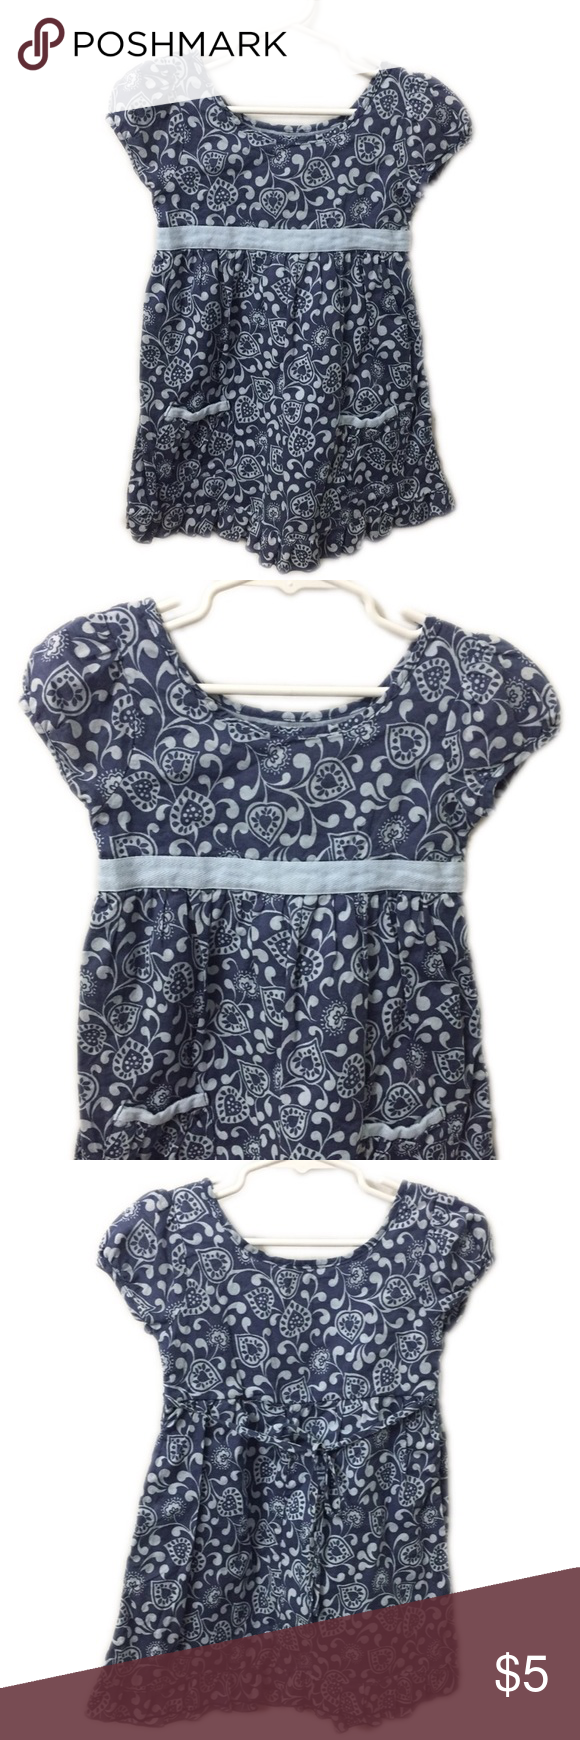 """🎈B2G1🎈Mossimo Supply Co. Blue Printed Dress, XS Mossimo Supply Co. Blue Printed Dress, XS, around a size 4T. GUC, normal wash wear.🎈This item is eligible for the """"Buy 2 Get 1 Free"""" promotion in my closet with a minimum purchase of $15. Free items are to be of equal or lesser in value than the other items. Mossimo Supply Co. Dresses Casual"""